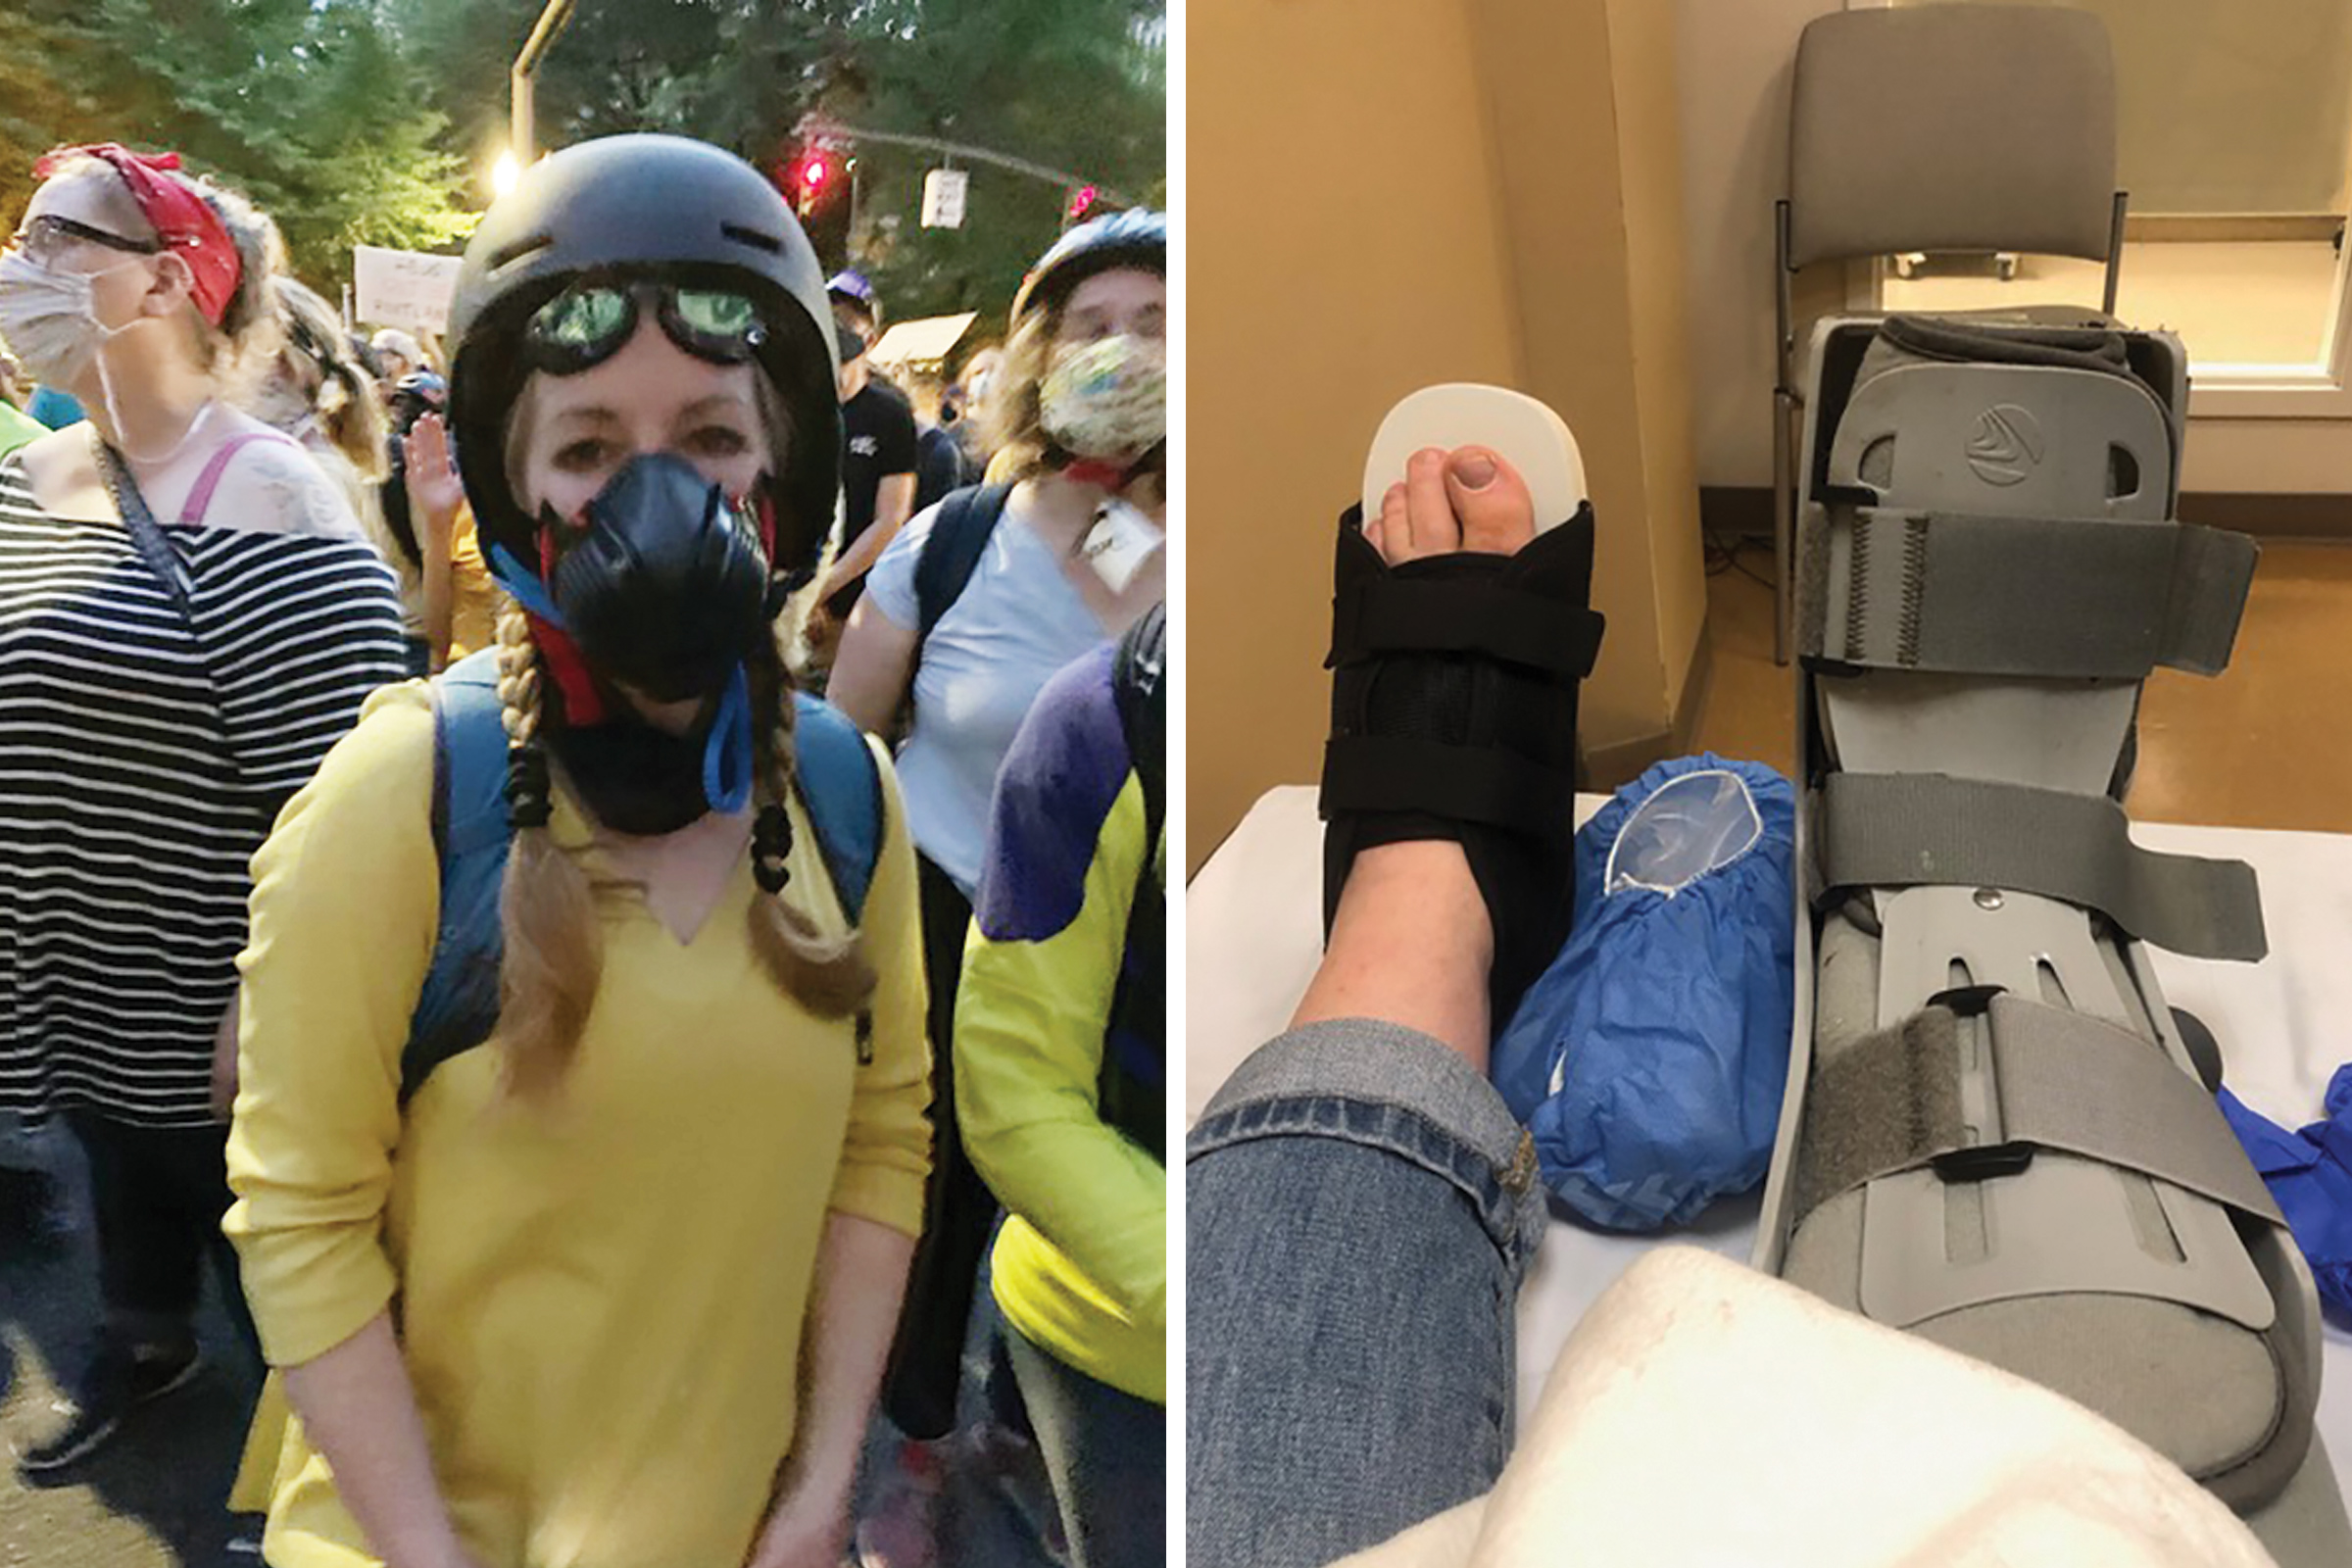 Ellen Urbani was hit in the foot by what she believes was a rubber bullet at a protest in Portland, Ore., on July 24.